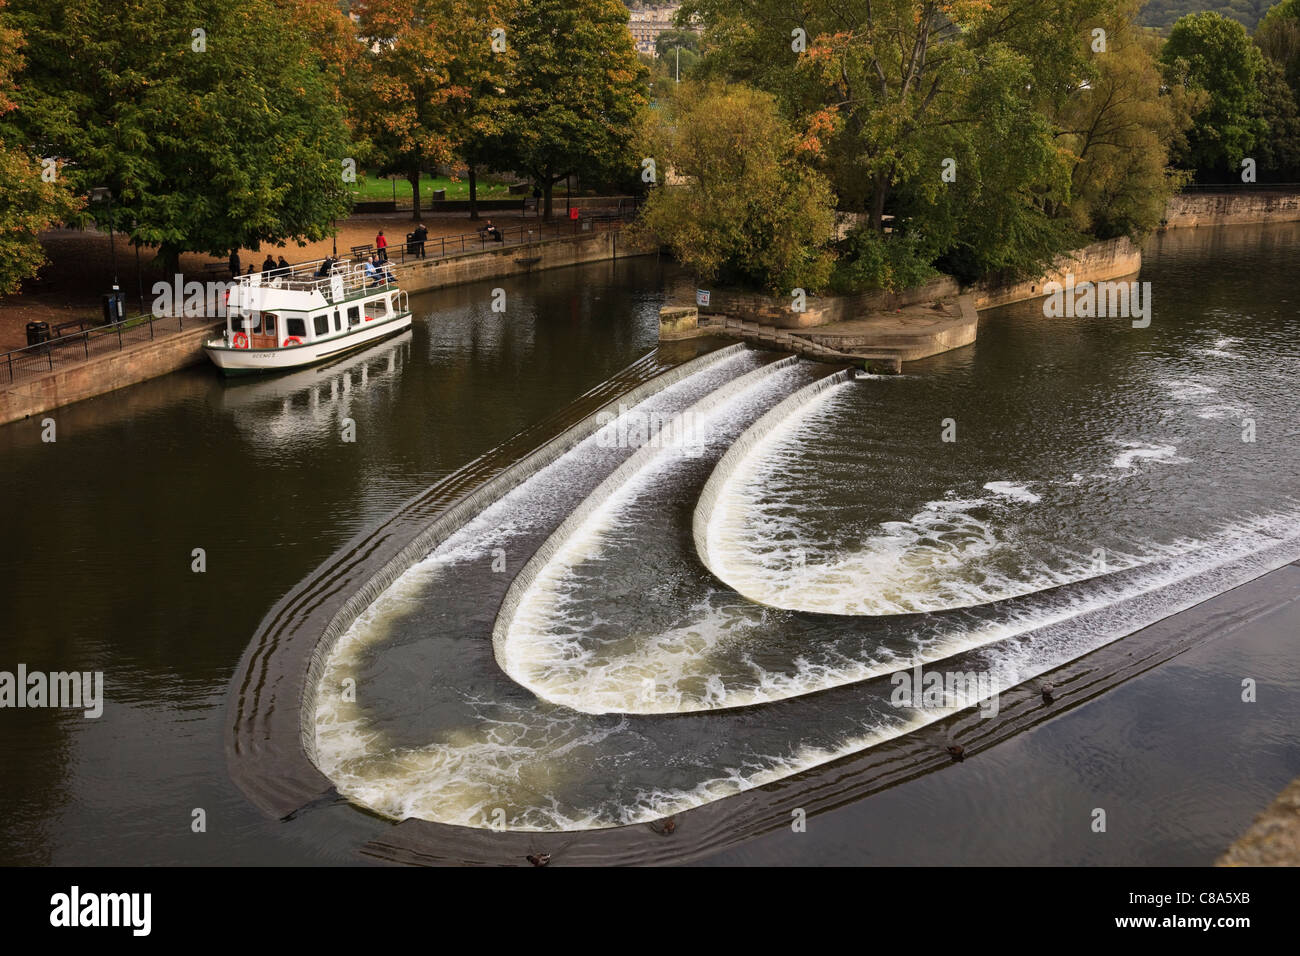 Tourist sightseeing cruise boat moored on the River Avon by Pulteney weir in Bath Somerset England UK Britain - Stock Image